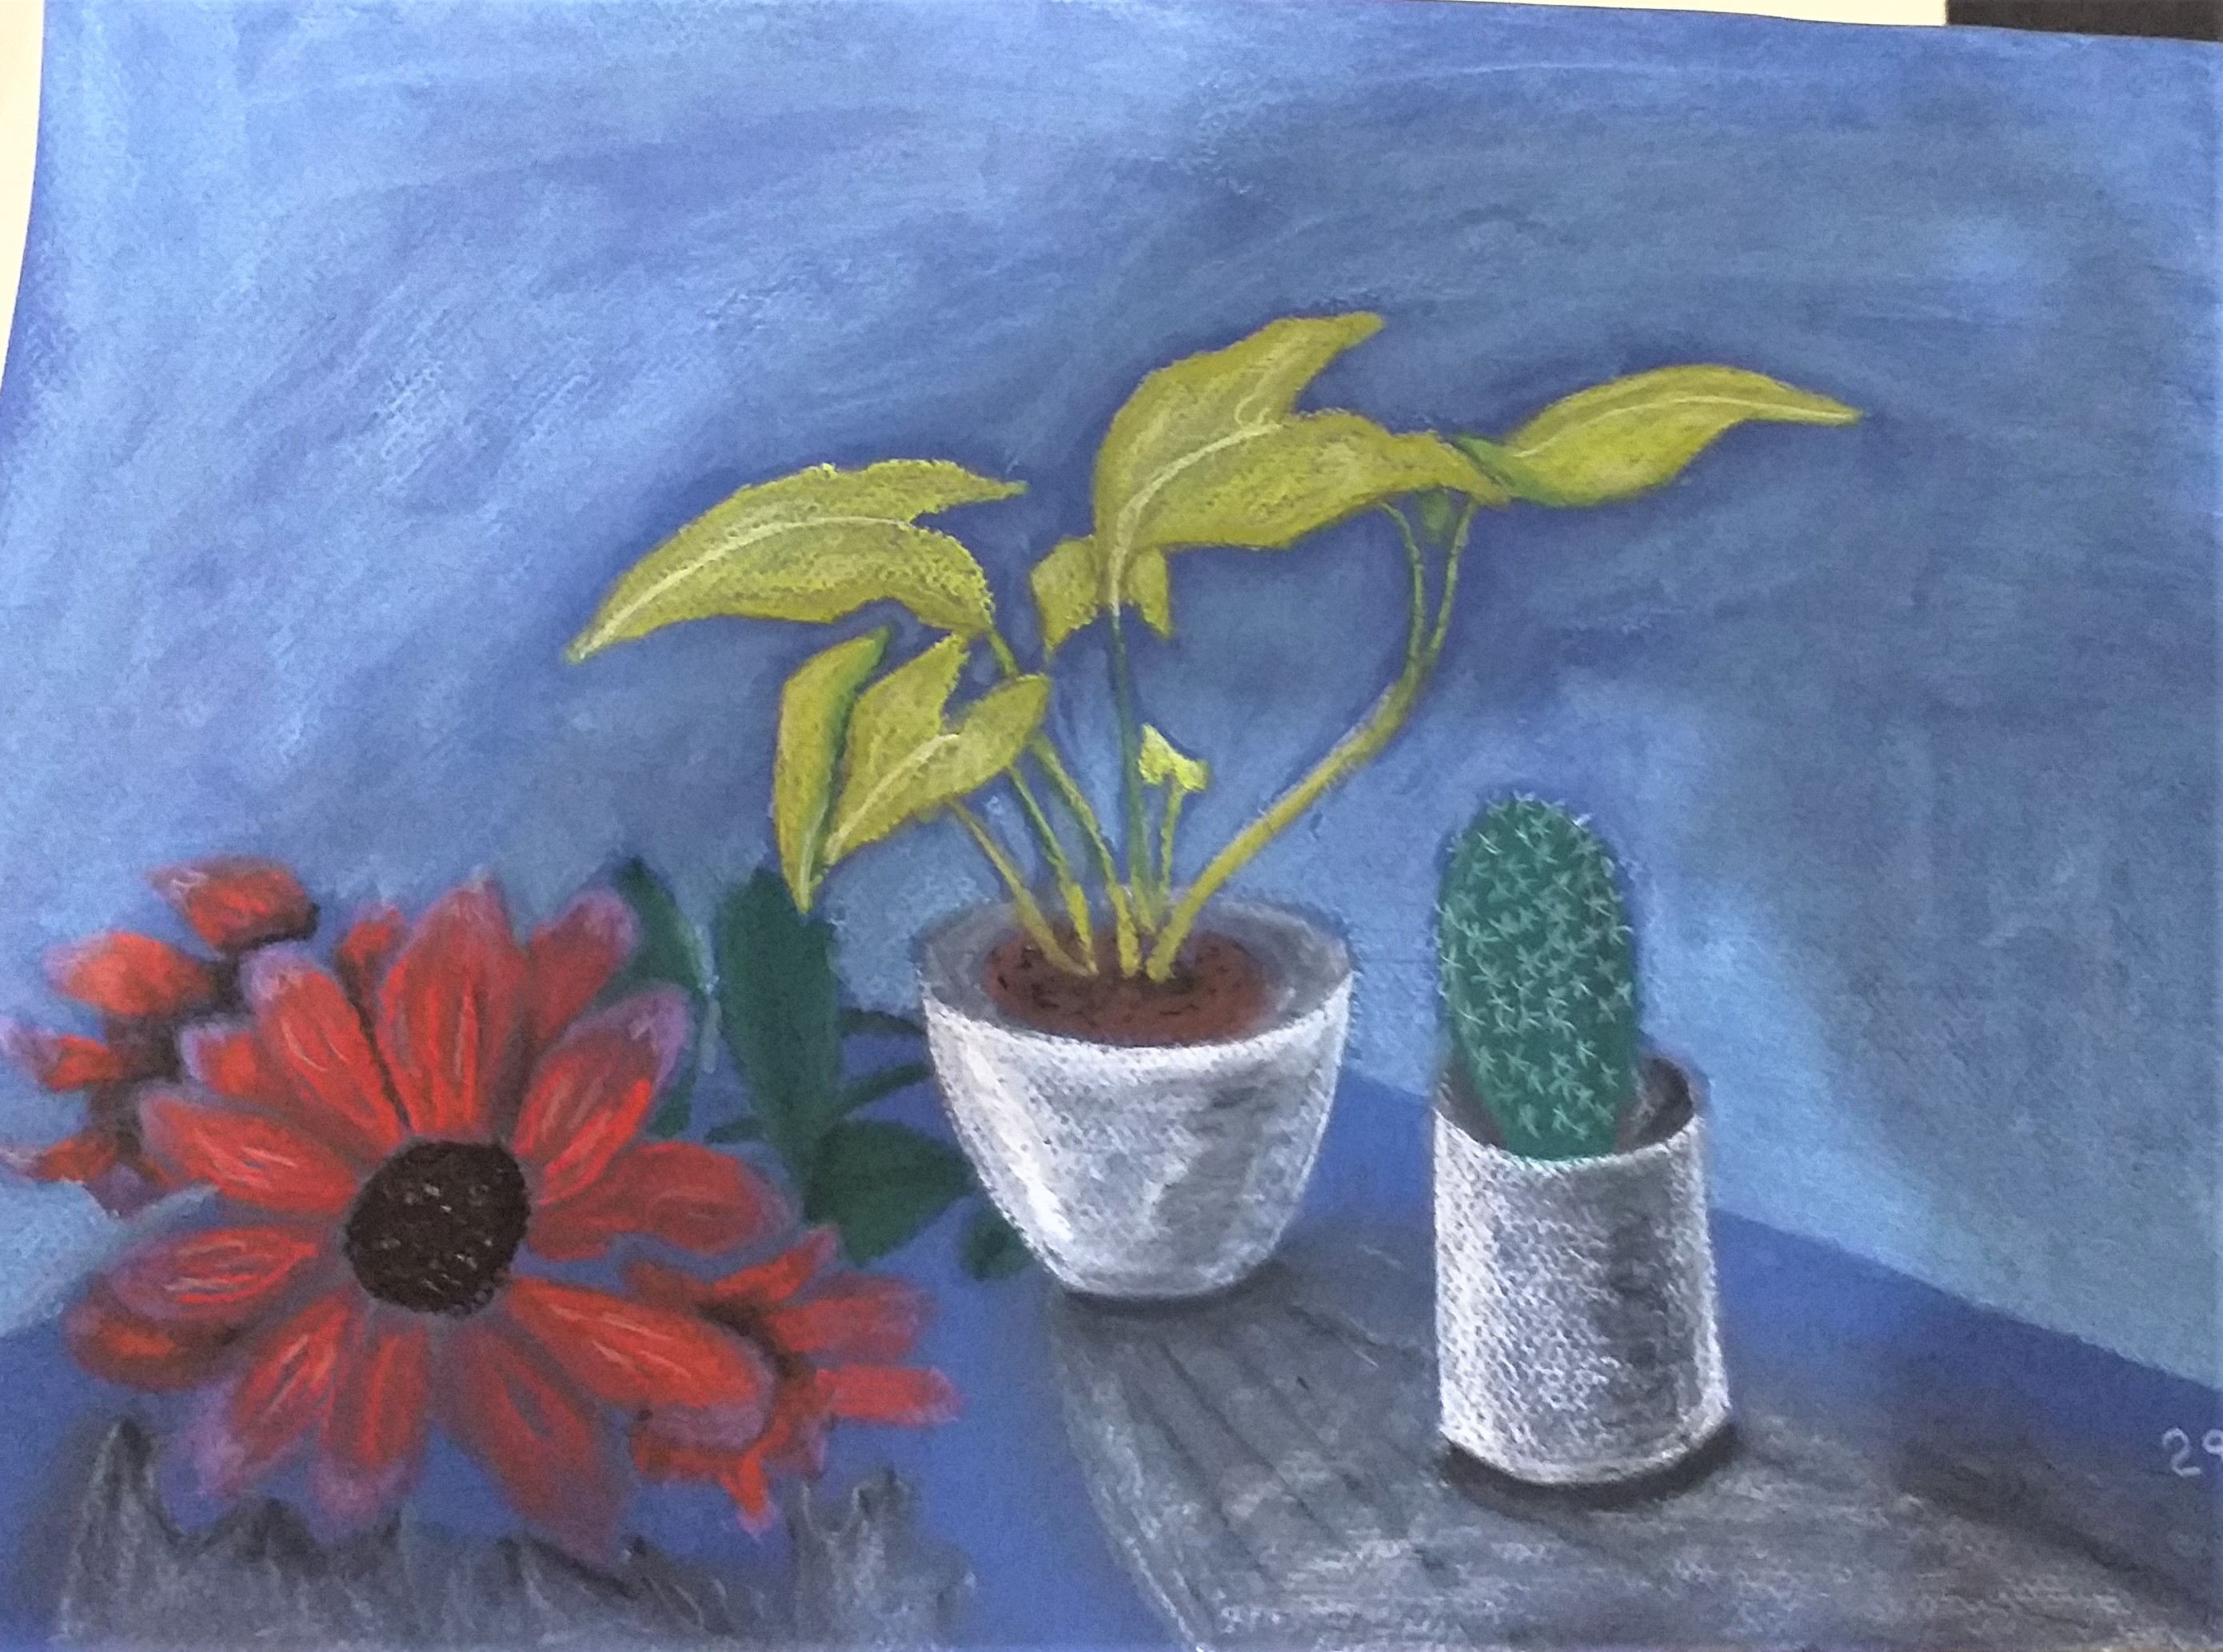 Learn to draw with pastels at Fundamental Art Skills course in Kidderminster Worcestershire